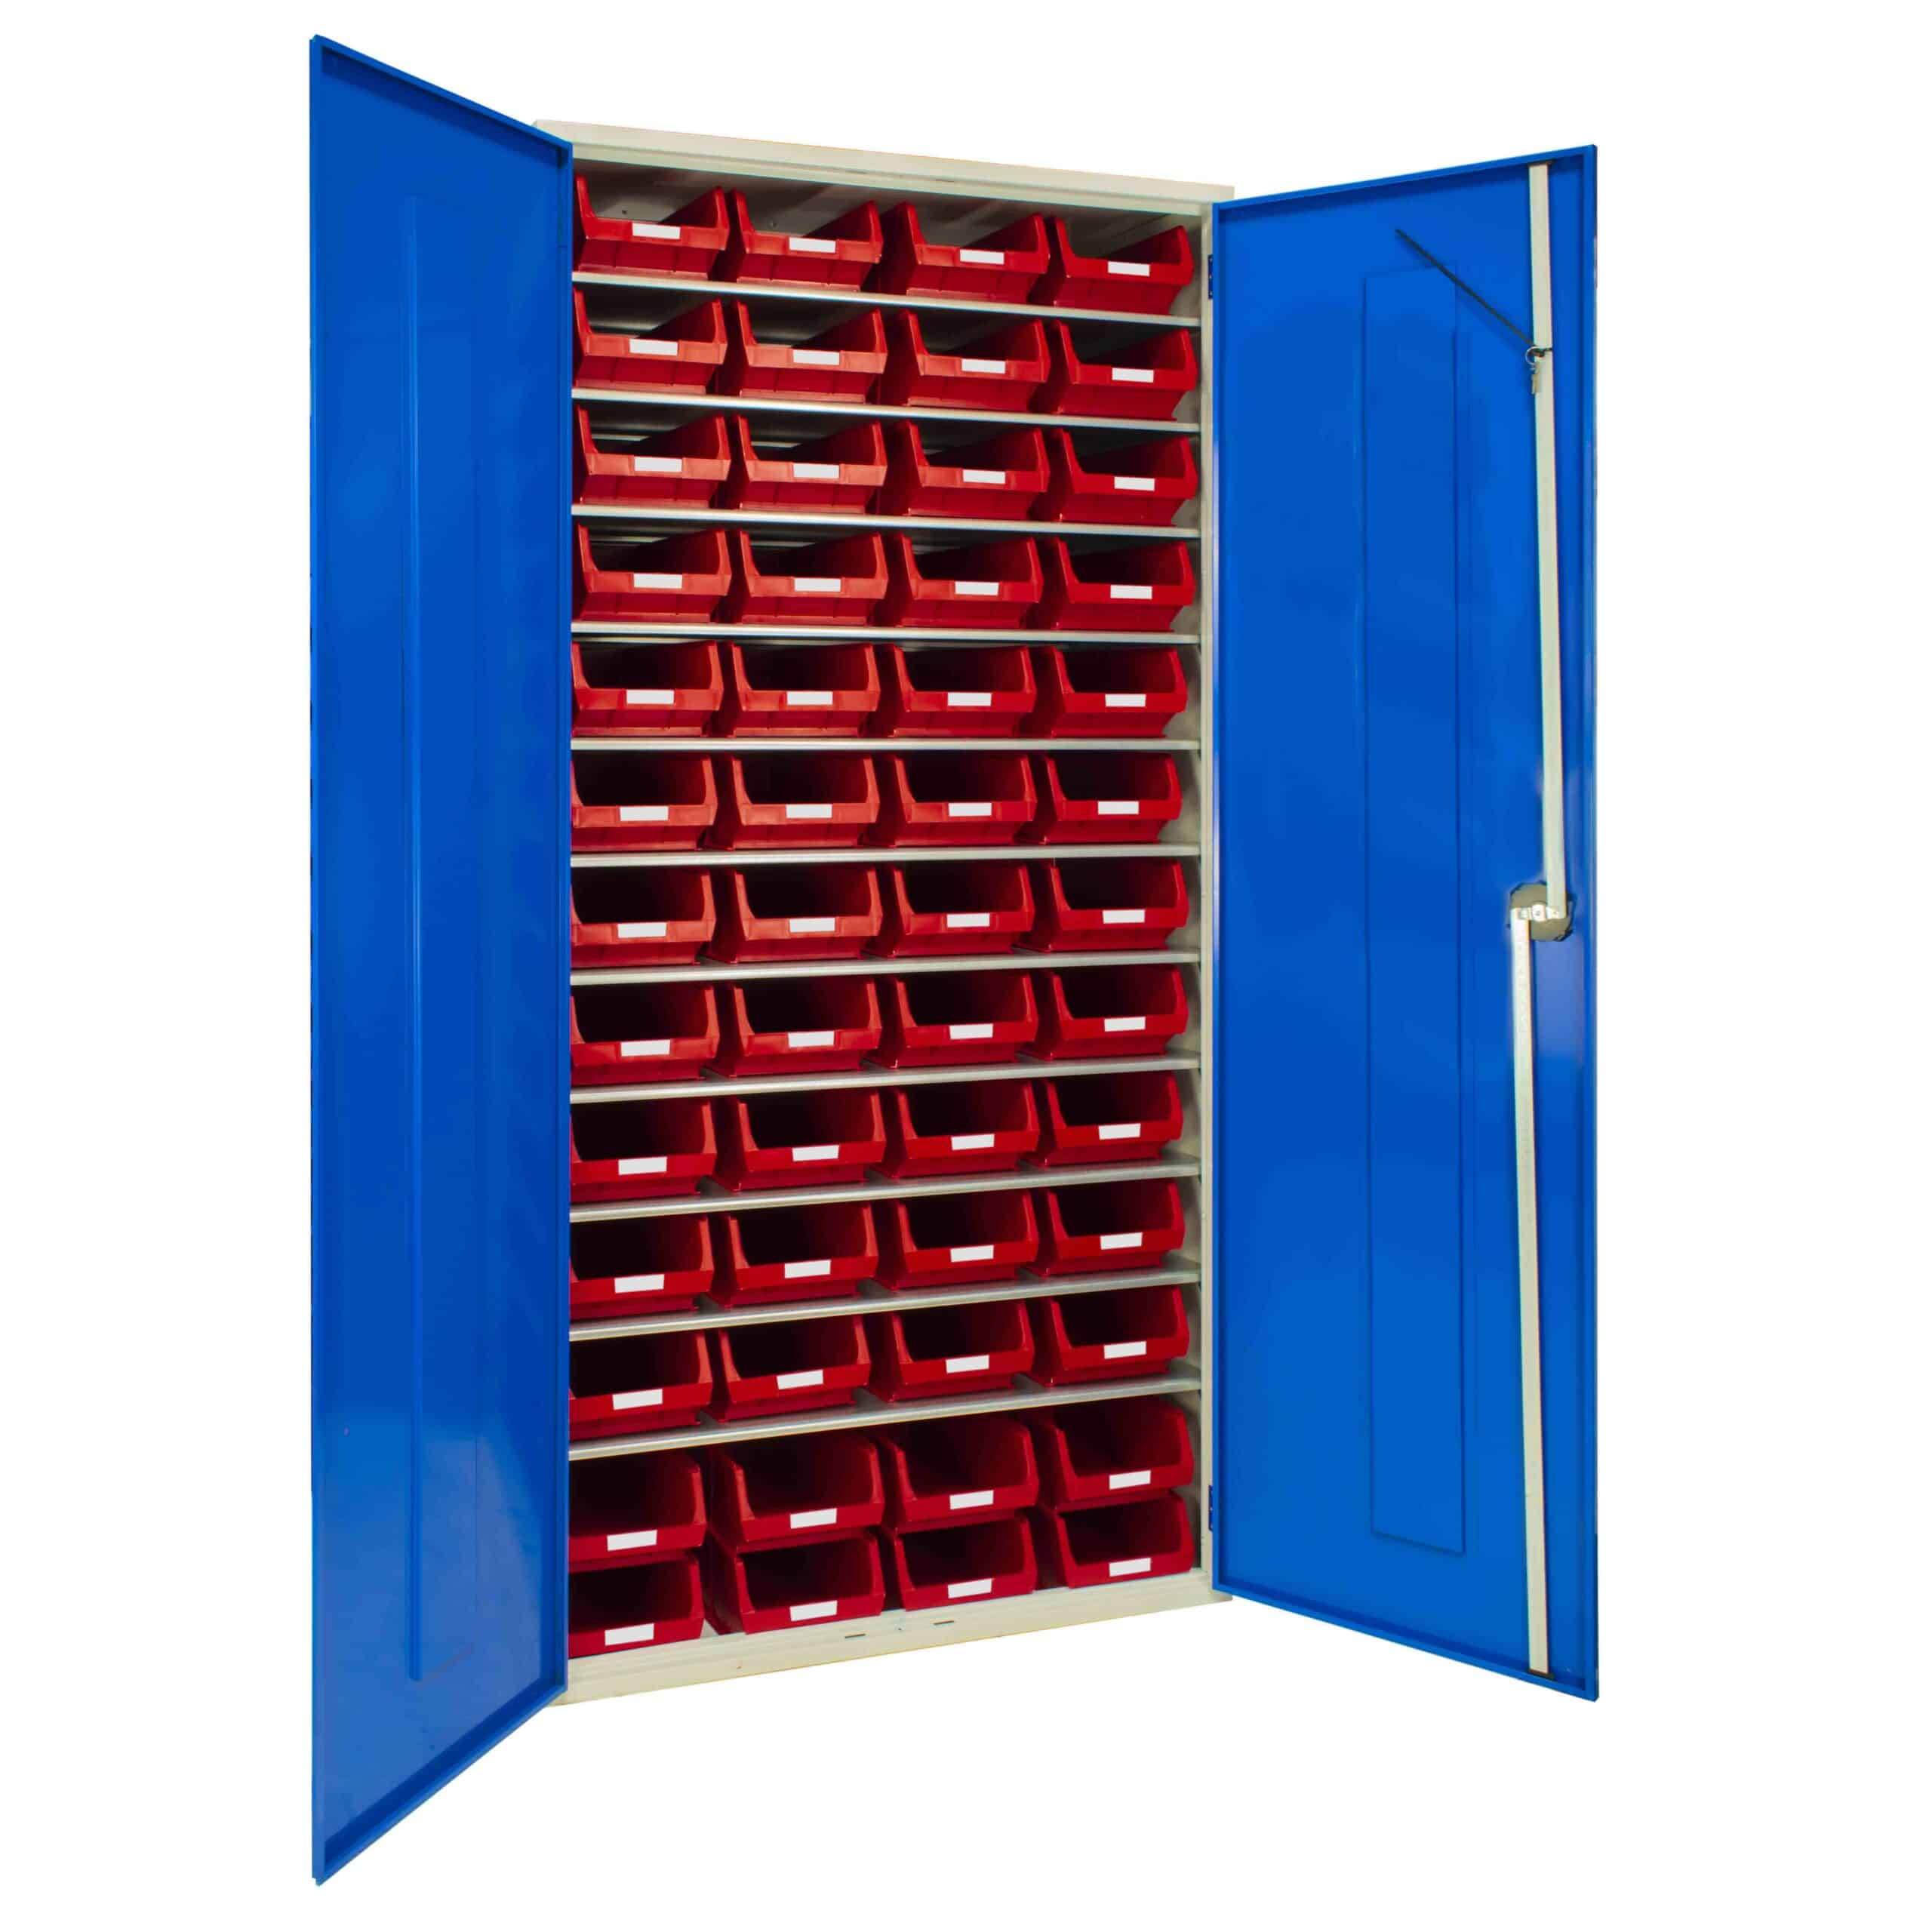 Container Cabinet With 52 TC4 Bins